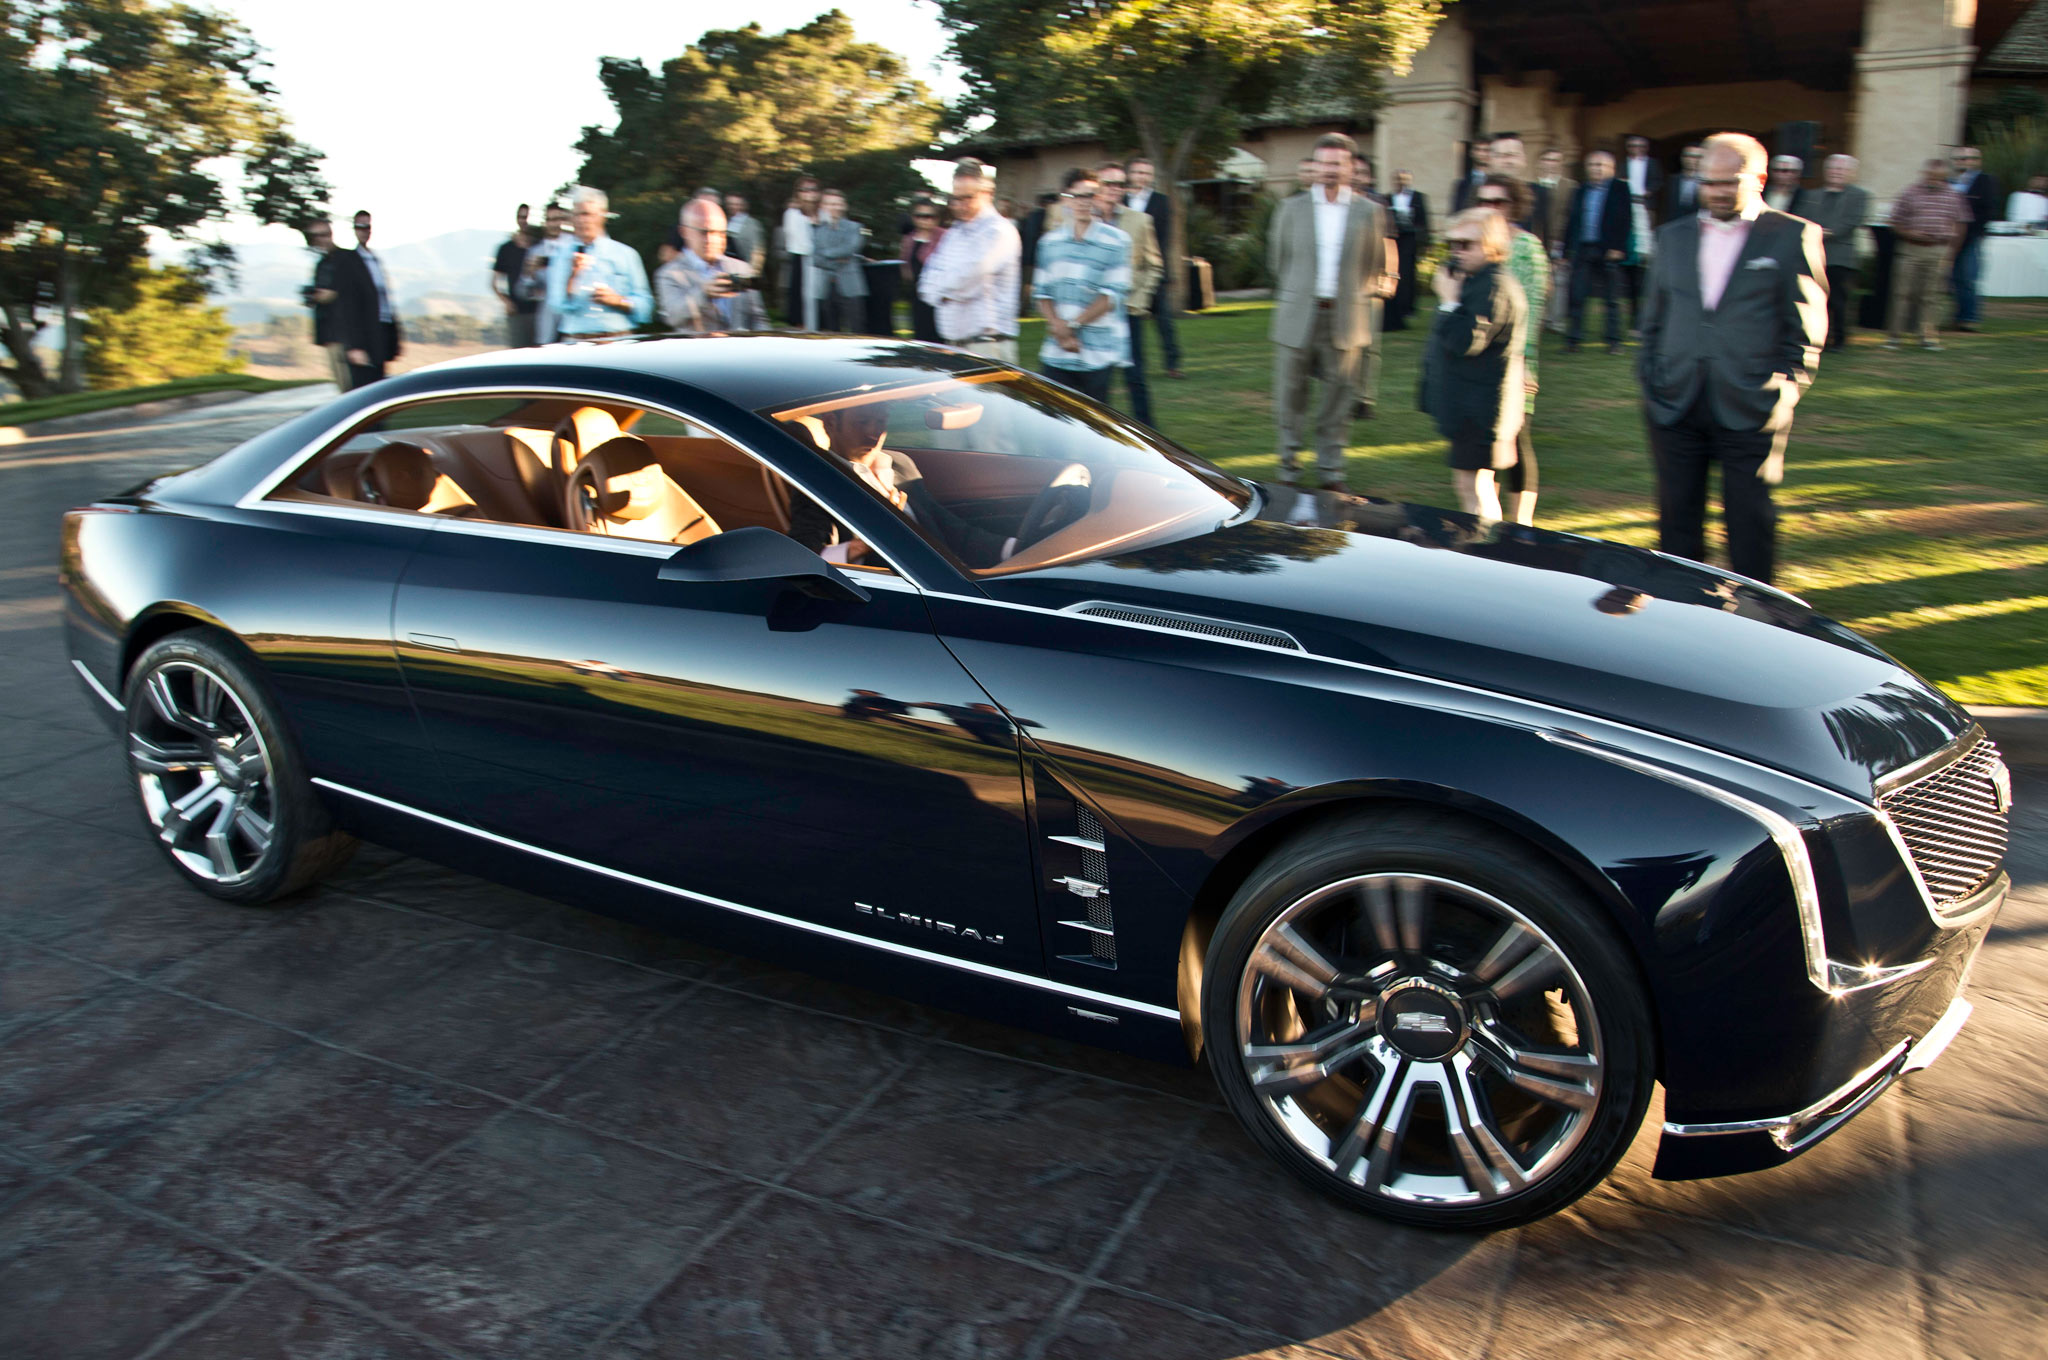 2017 Cadillac Elmiraj Price >> 2013 Cadillac Elmiraj Concept Revealed At Pebble Beach Automobile